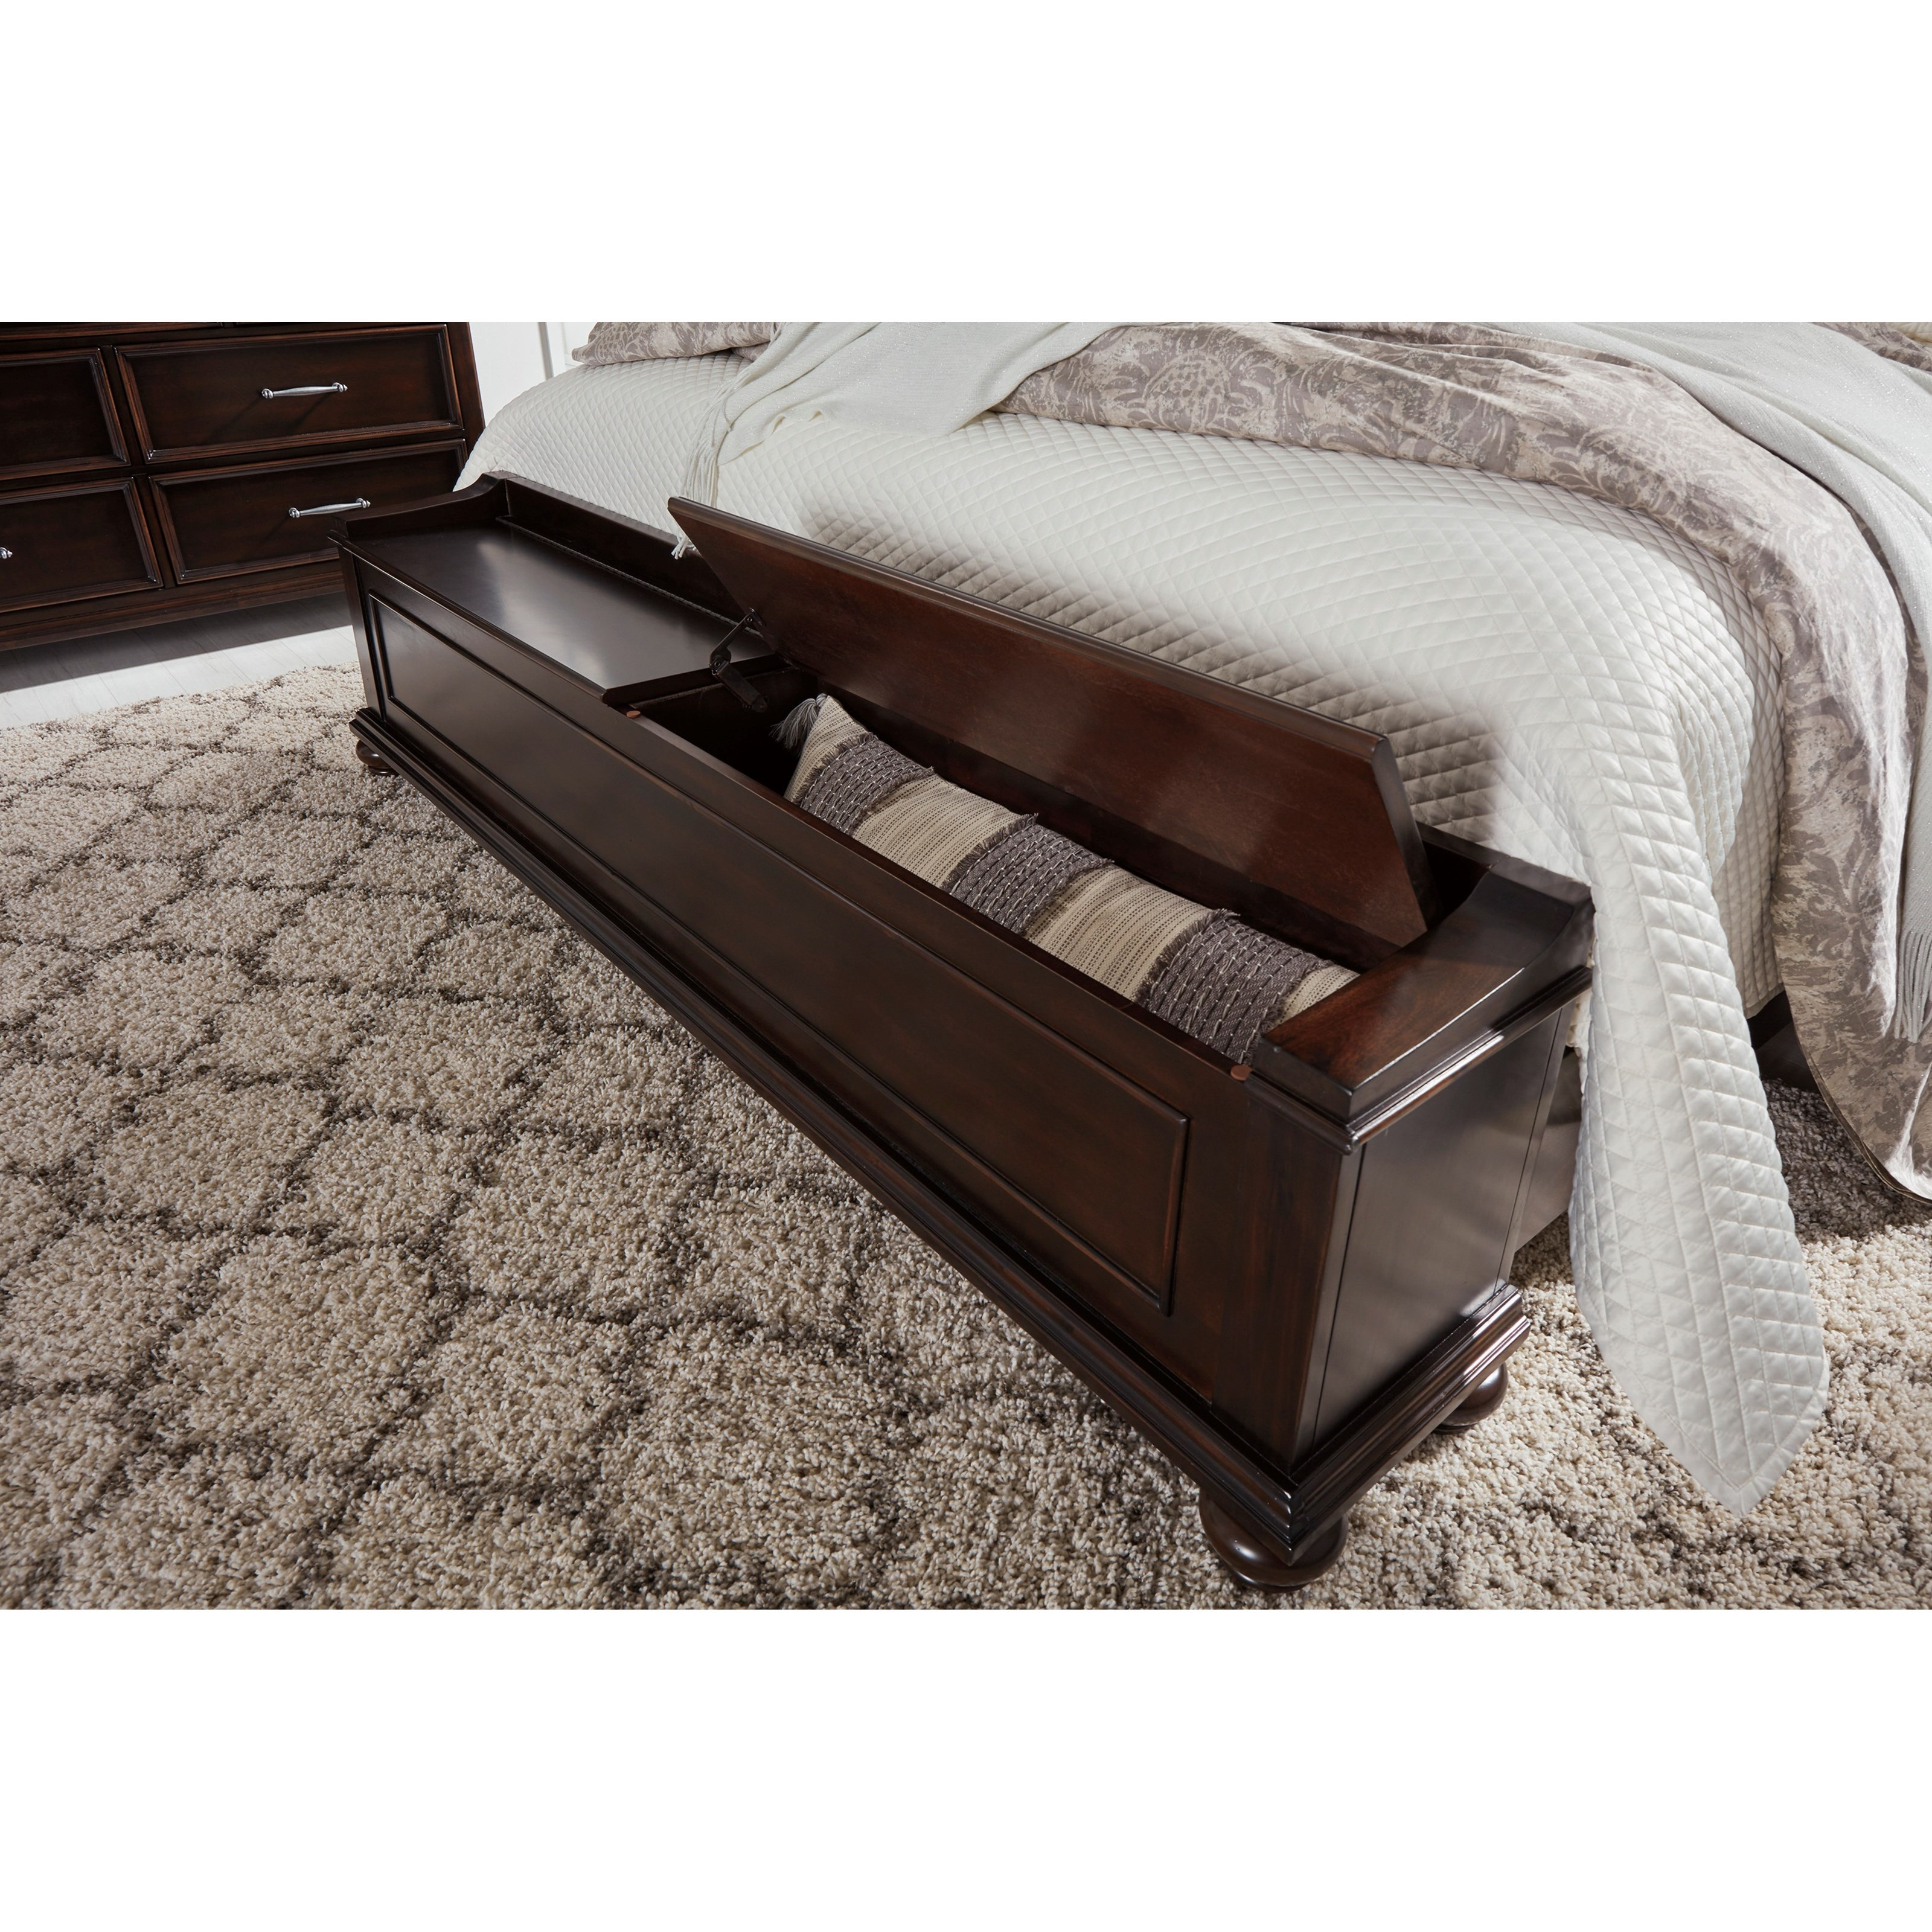 Bedroom Bench King Bed Brynhurst Traditional King Panel Bed With Storage Bench